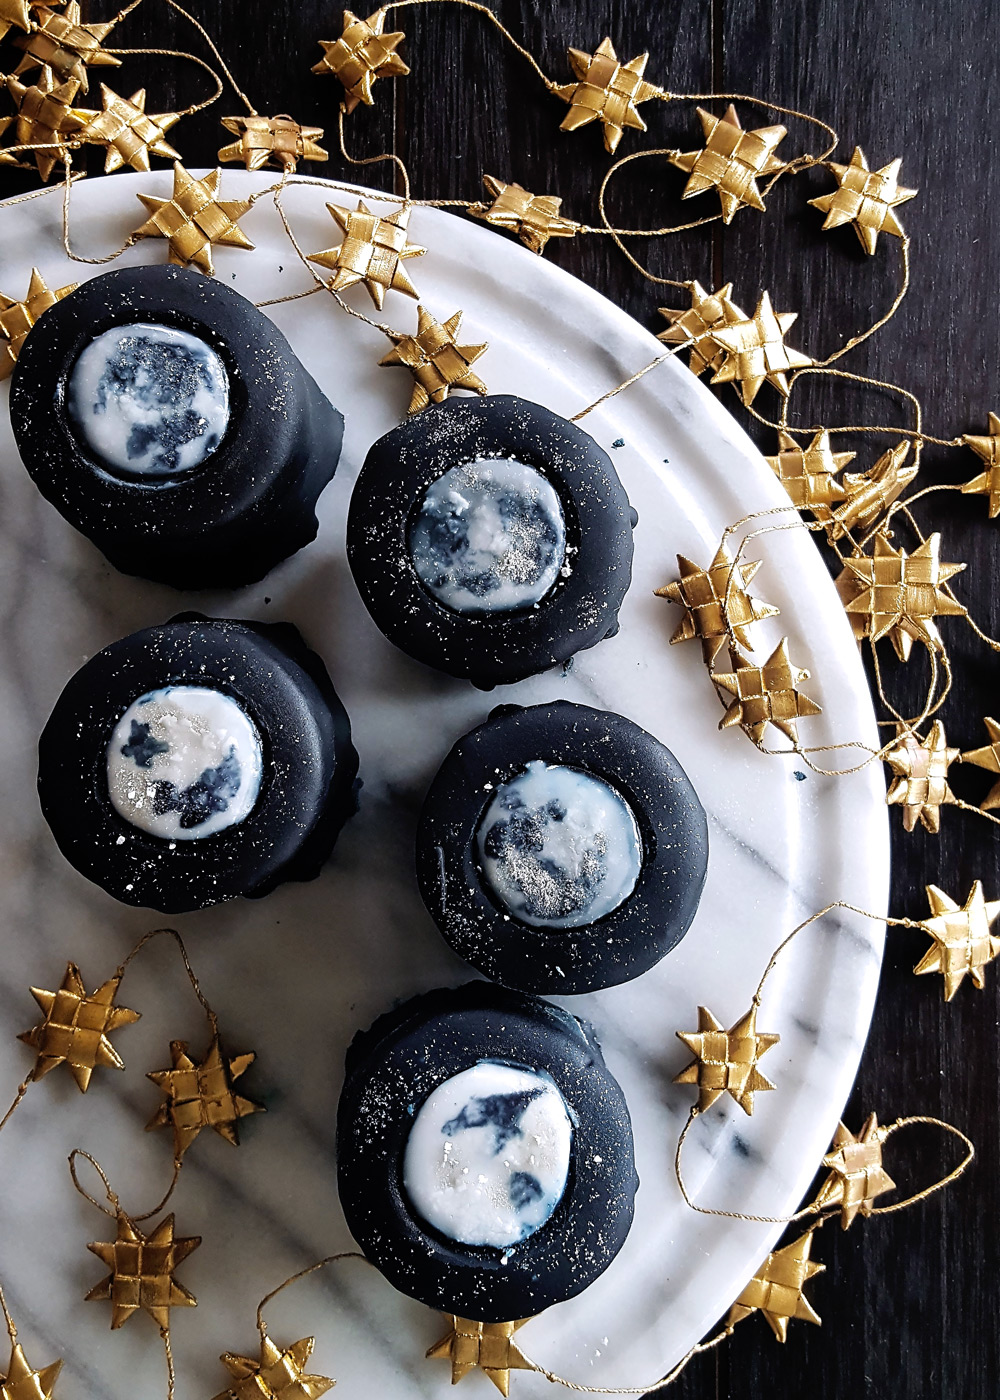 A marble platter full of tiny takes with painted full moons, set on a black table with a golden star garland around them.